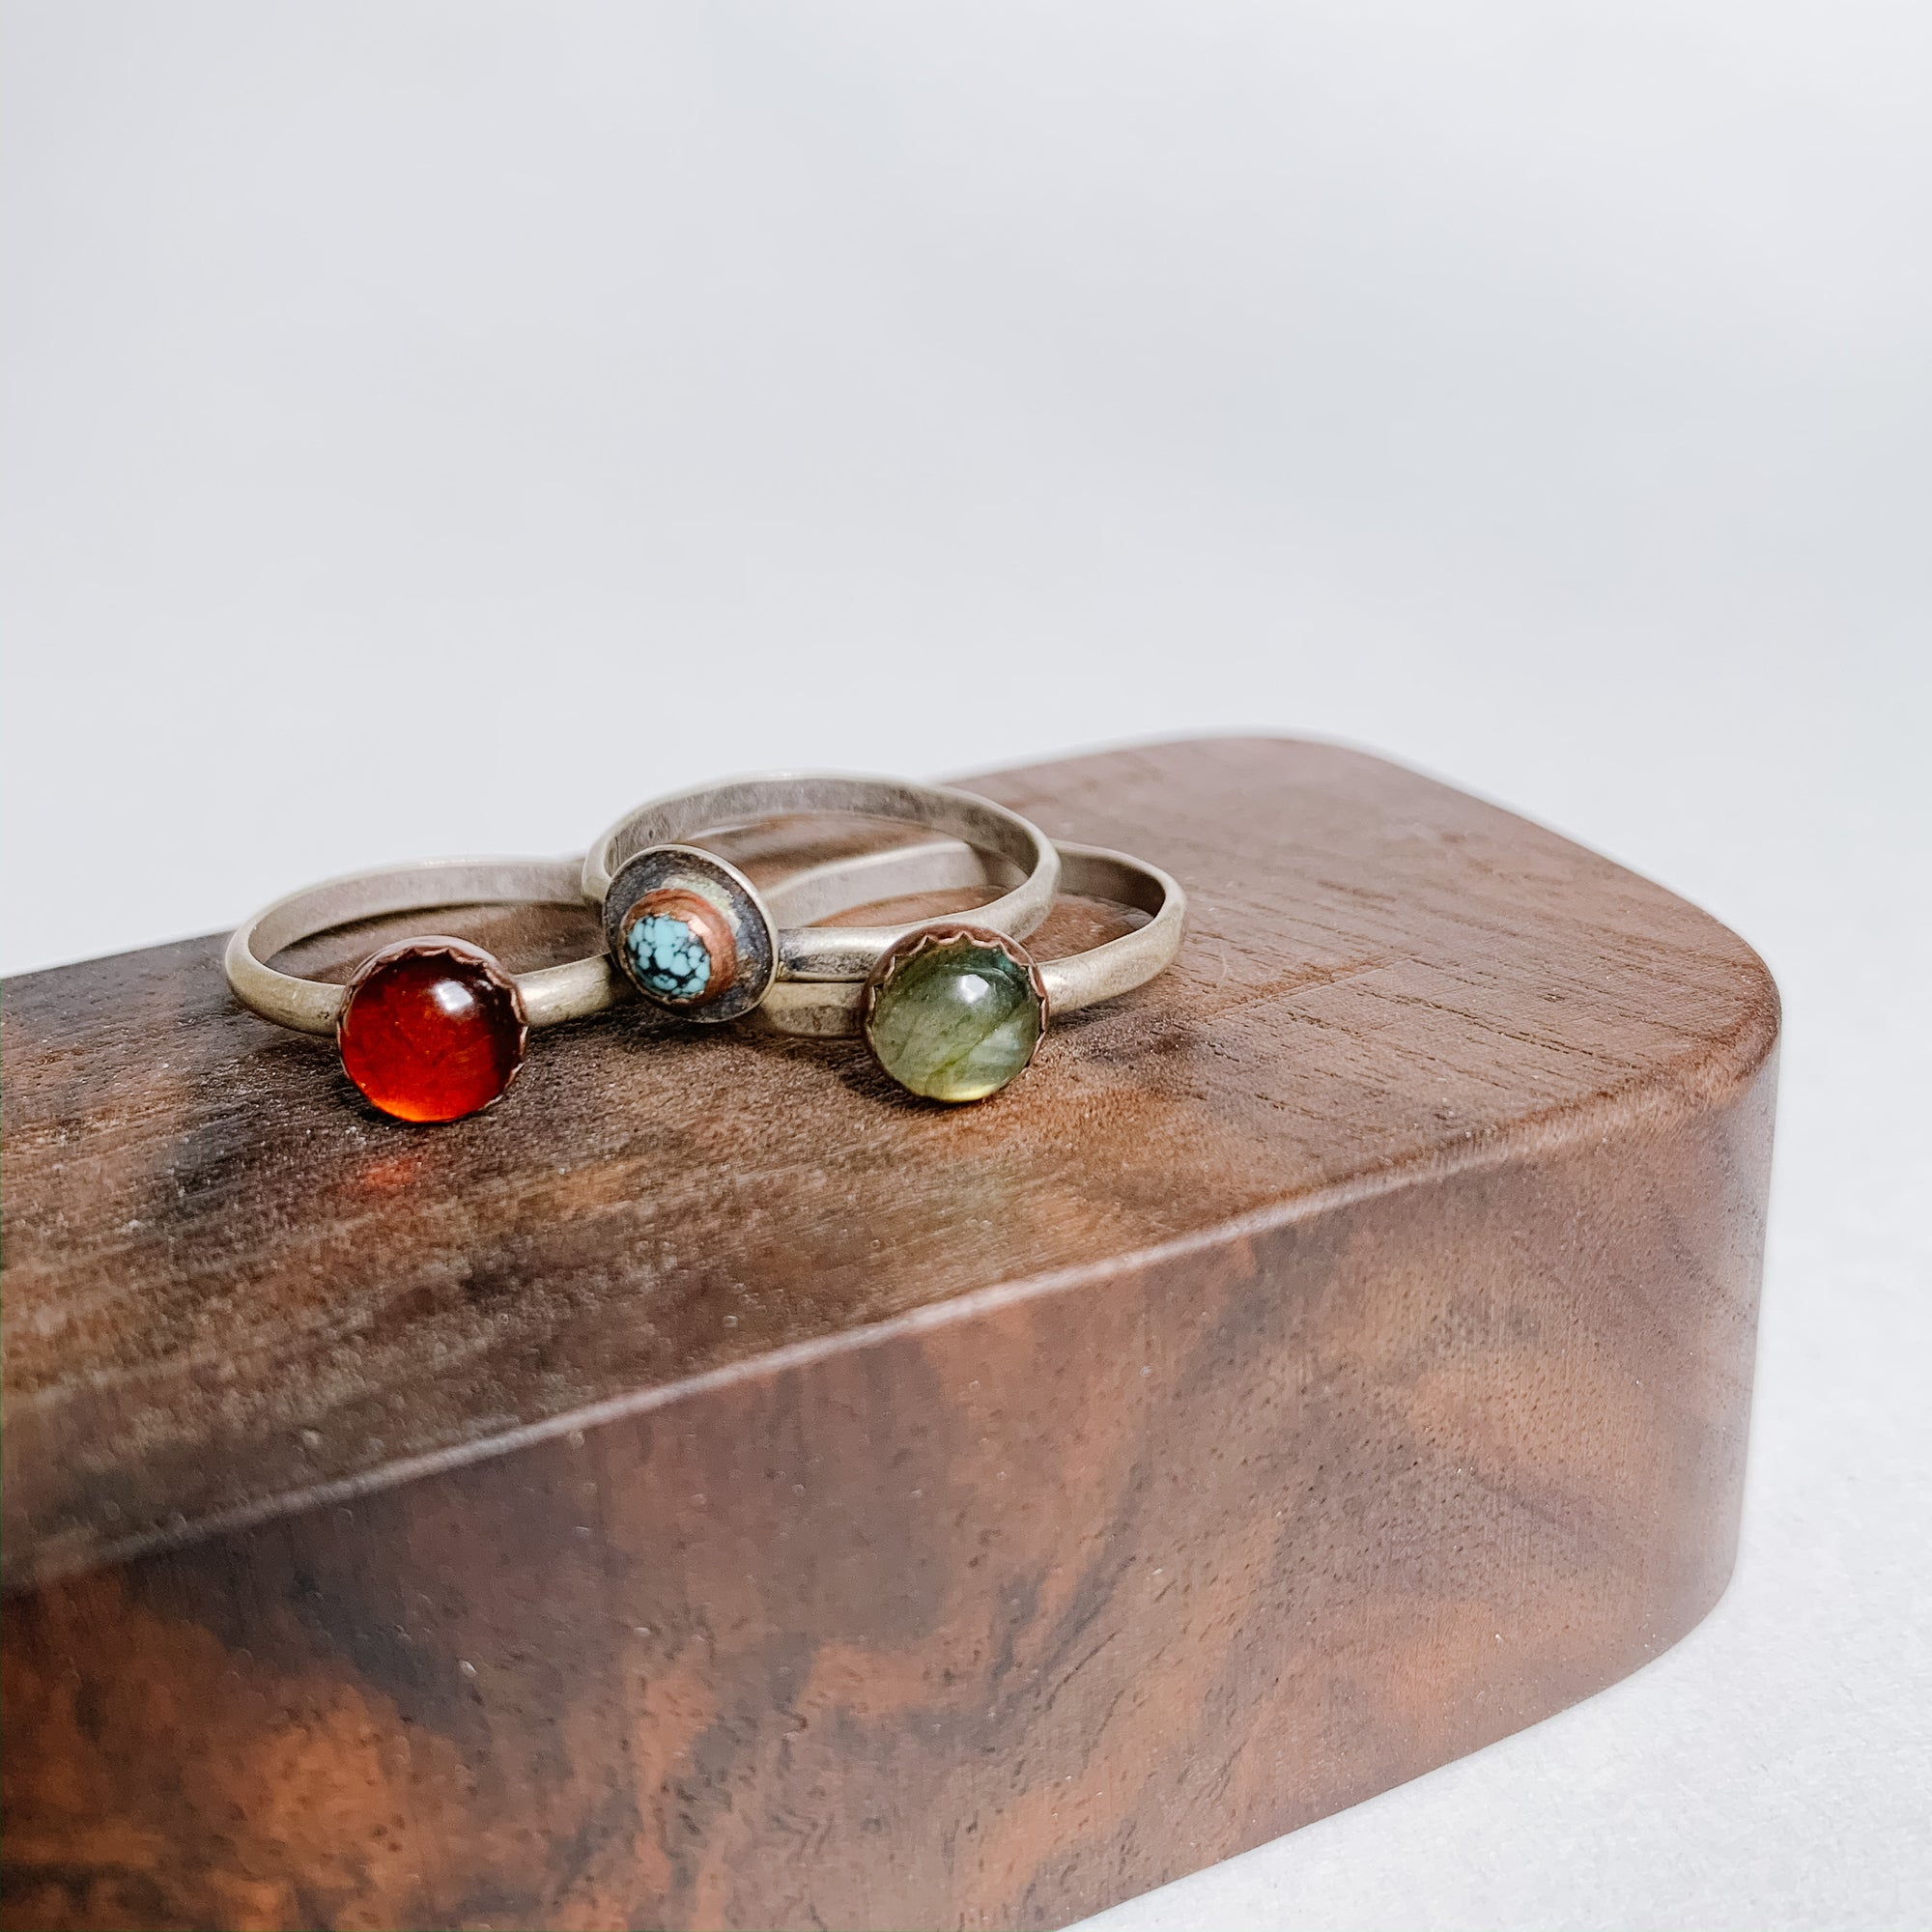 Labradorite Boho Stacking Ring - size 6 - Femme Wares Niagara Local Small Business